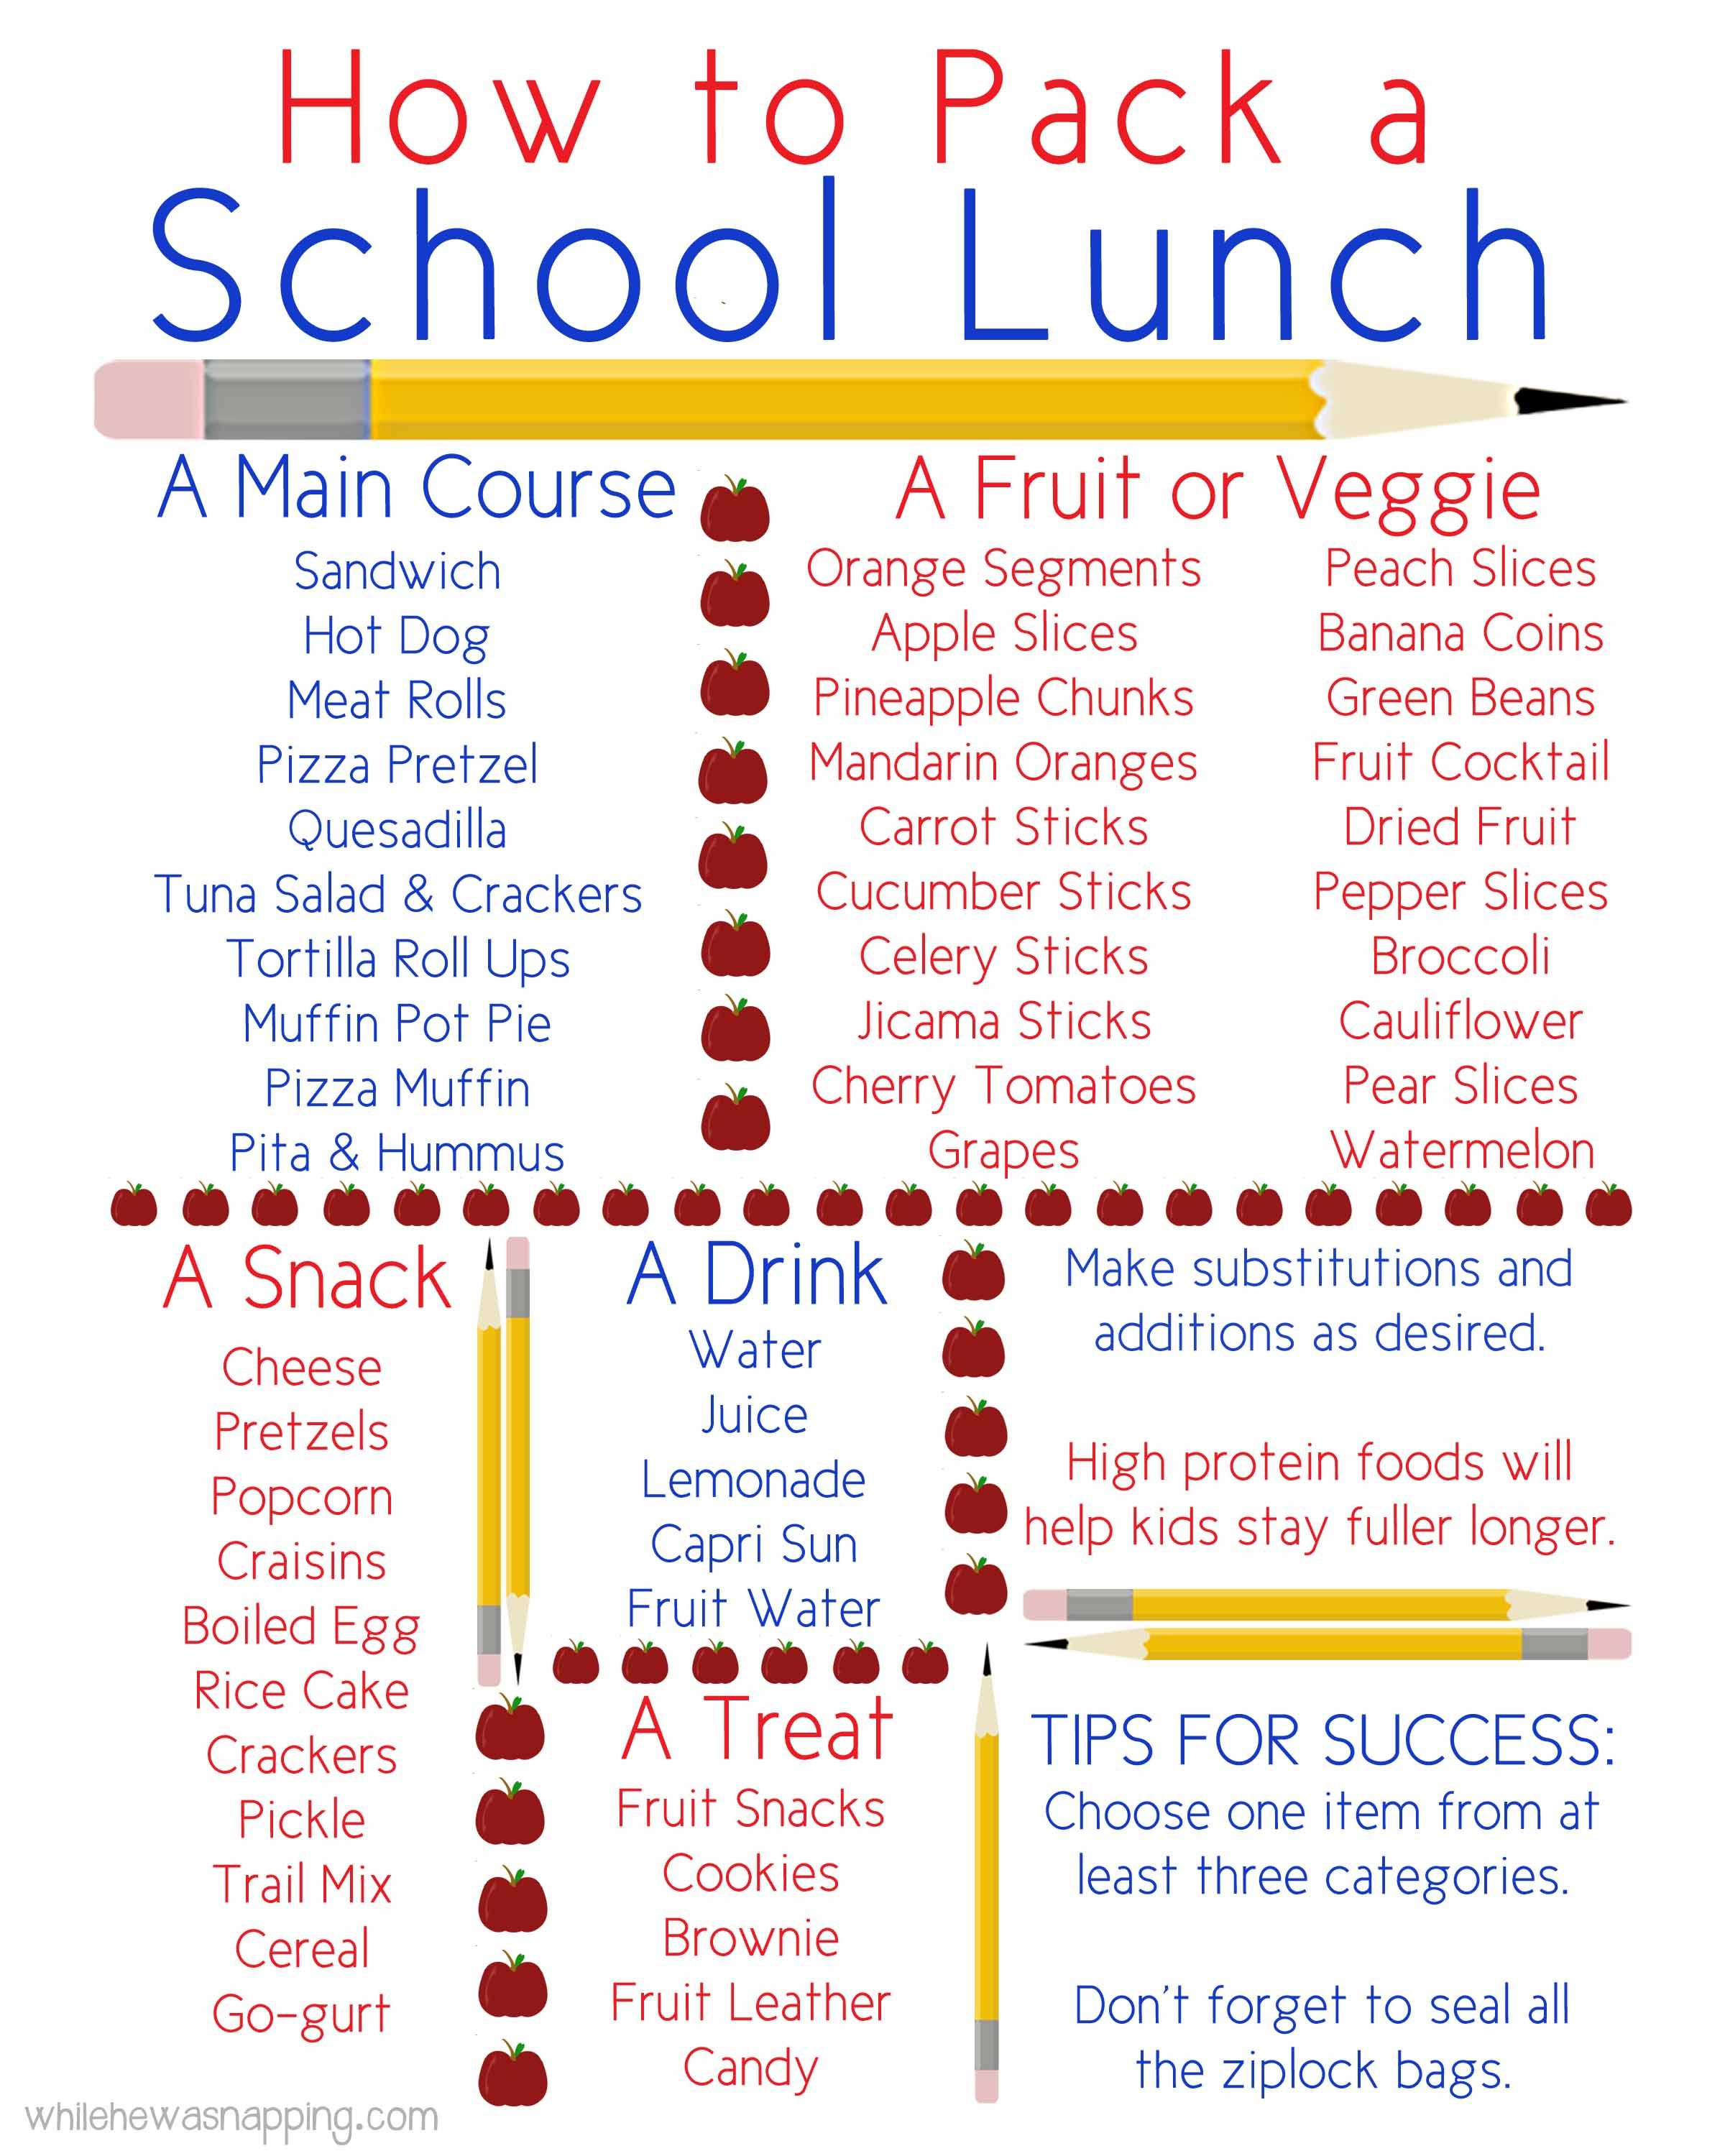 How to Pack a School Lunch | Meals | Pinterest | School lunch ...